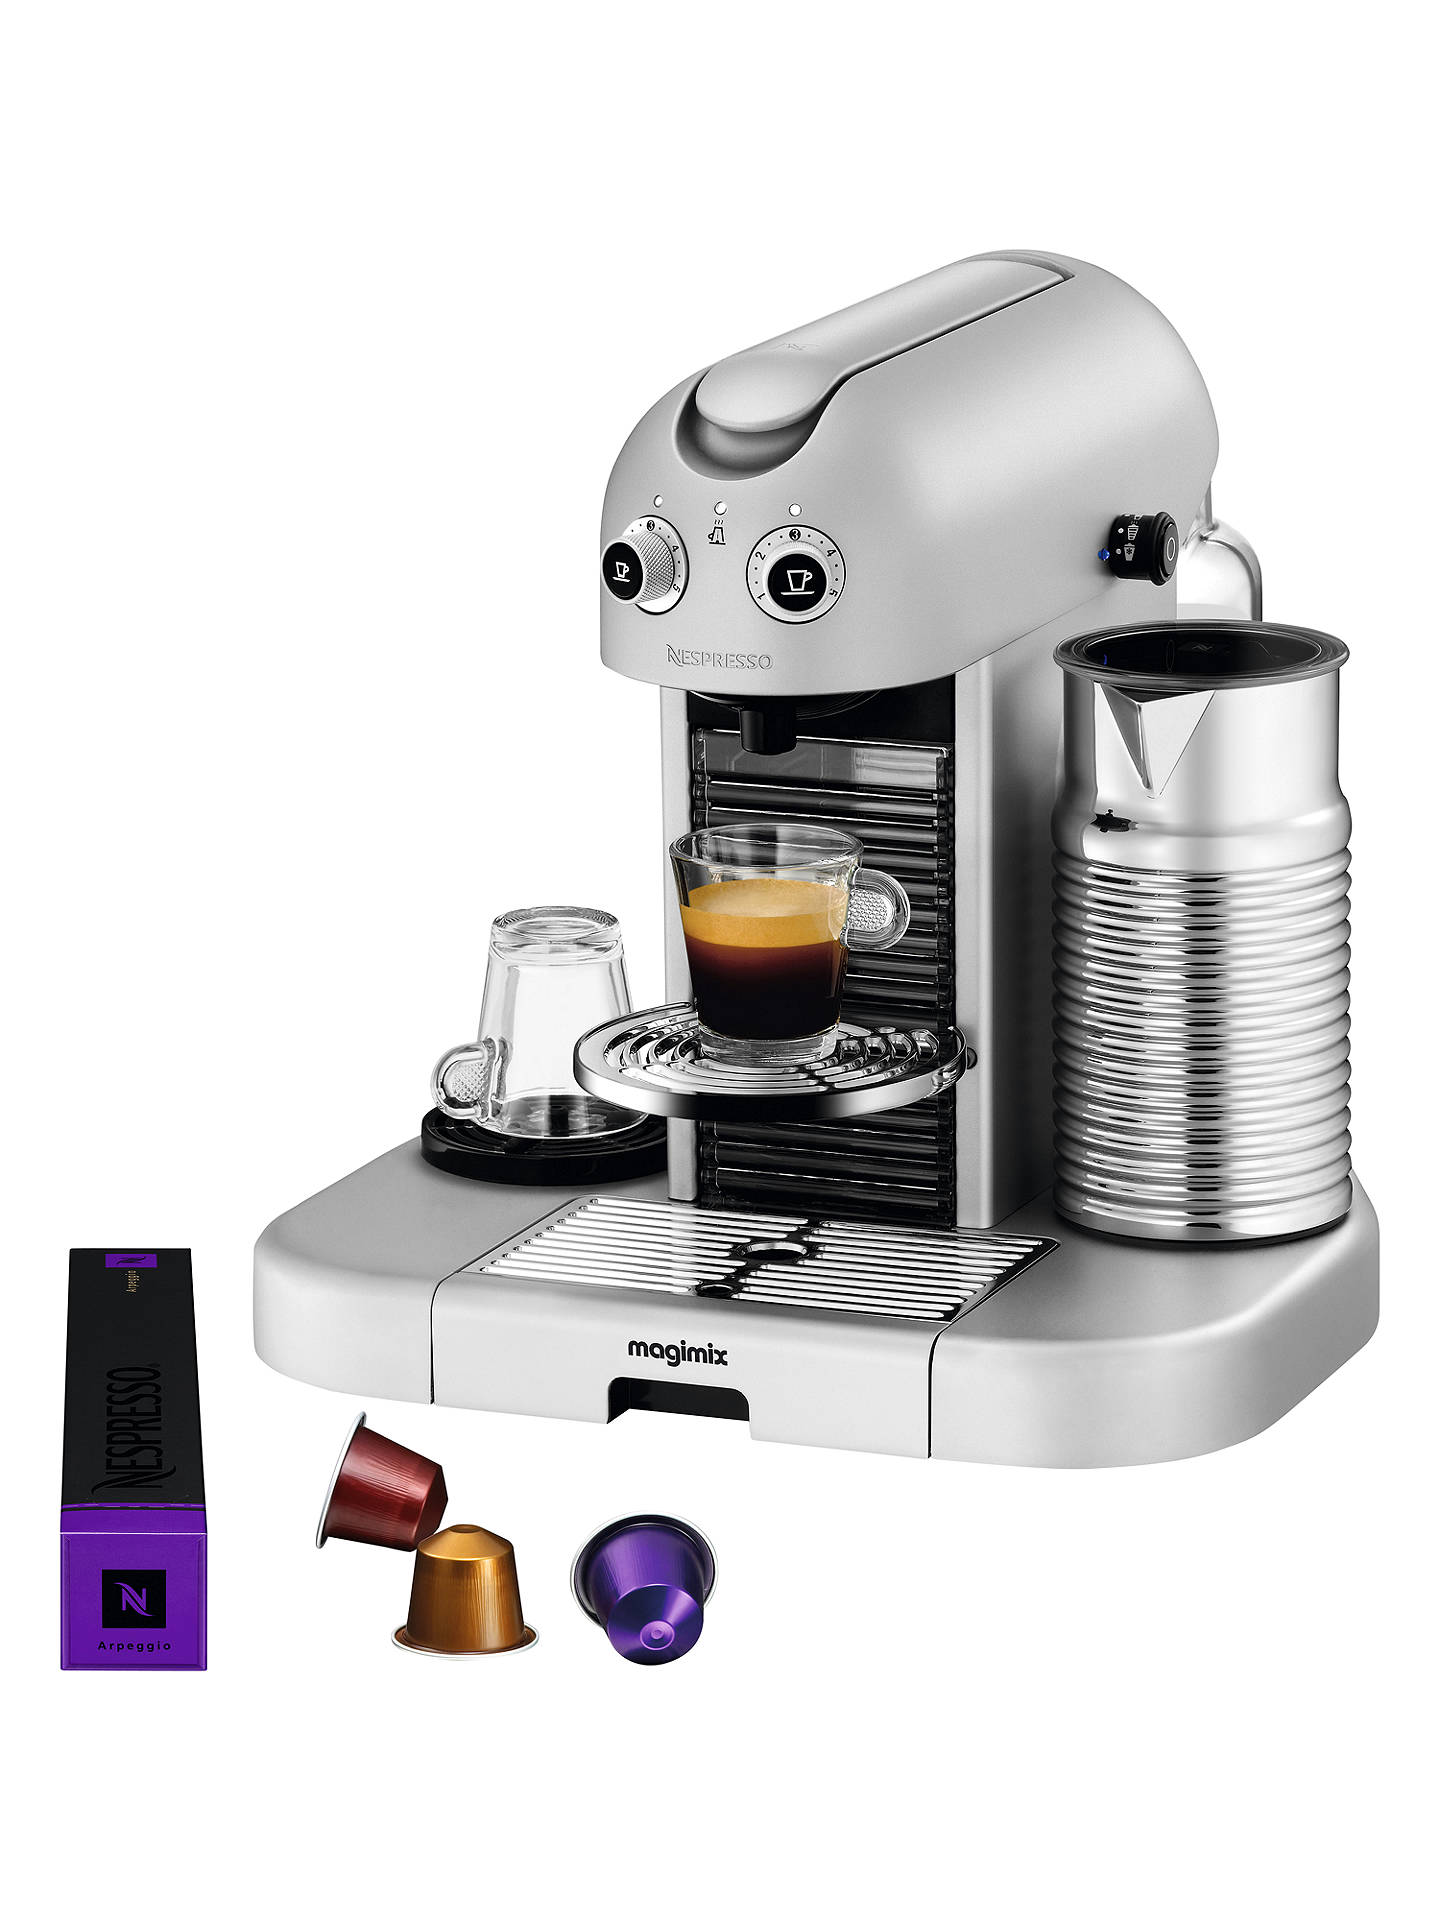 Buy Nespresso Gran Maestria Coffee Machine by Magimix, Silver Online at johnlewis.com